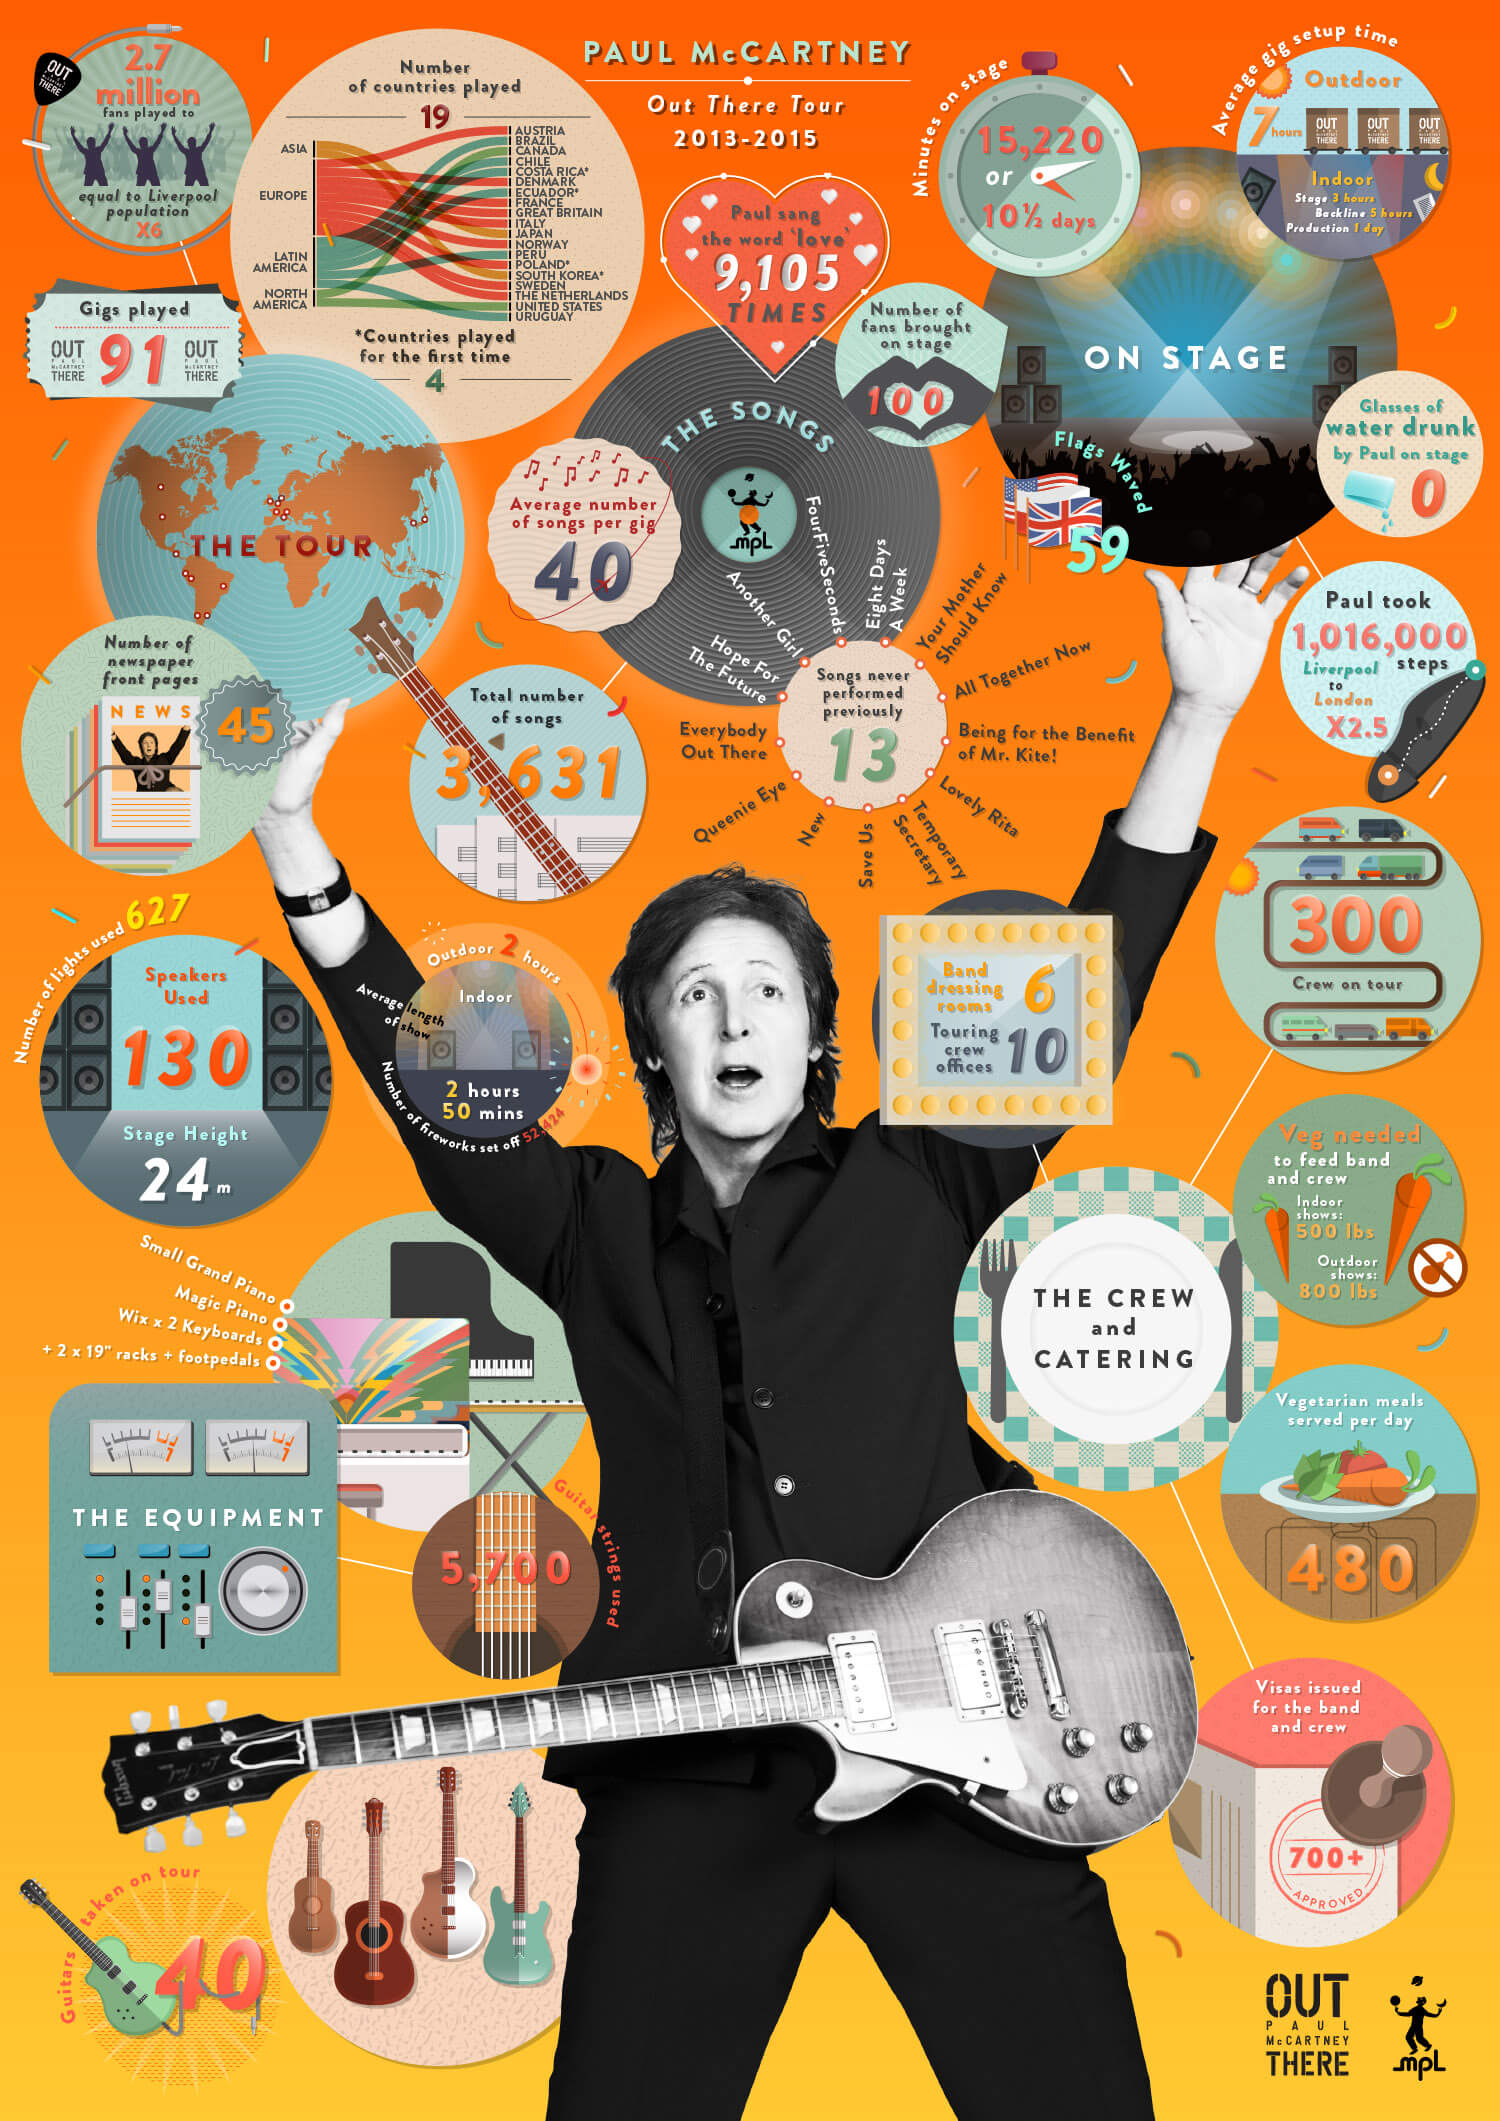 OUT_THERE Infographic 4